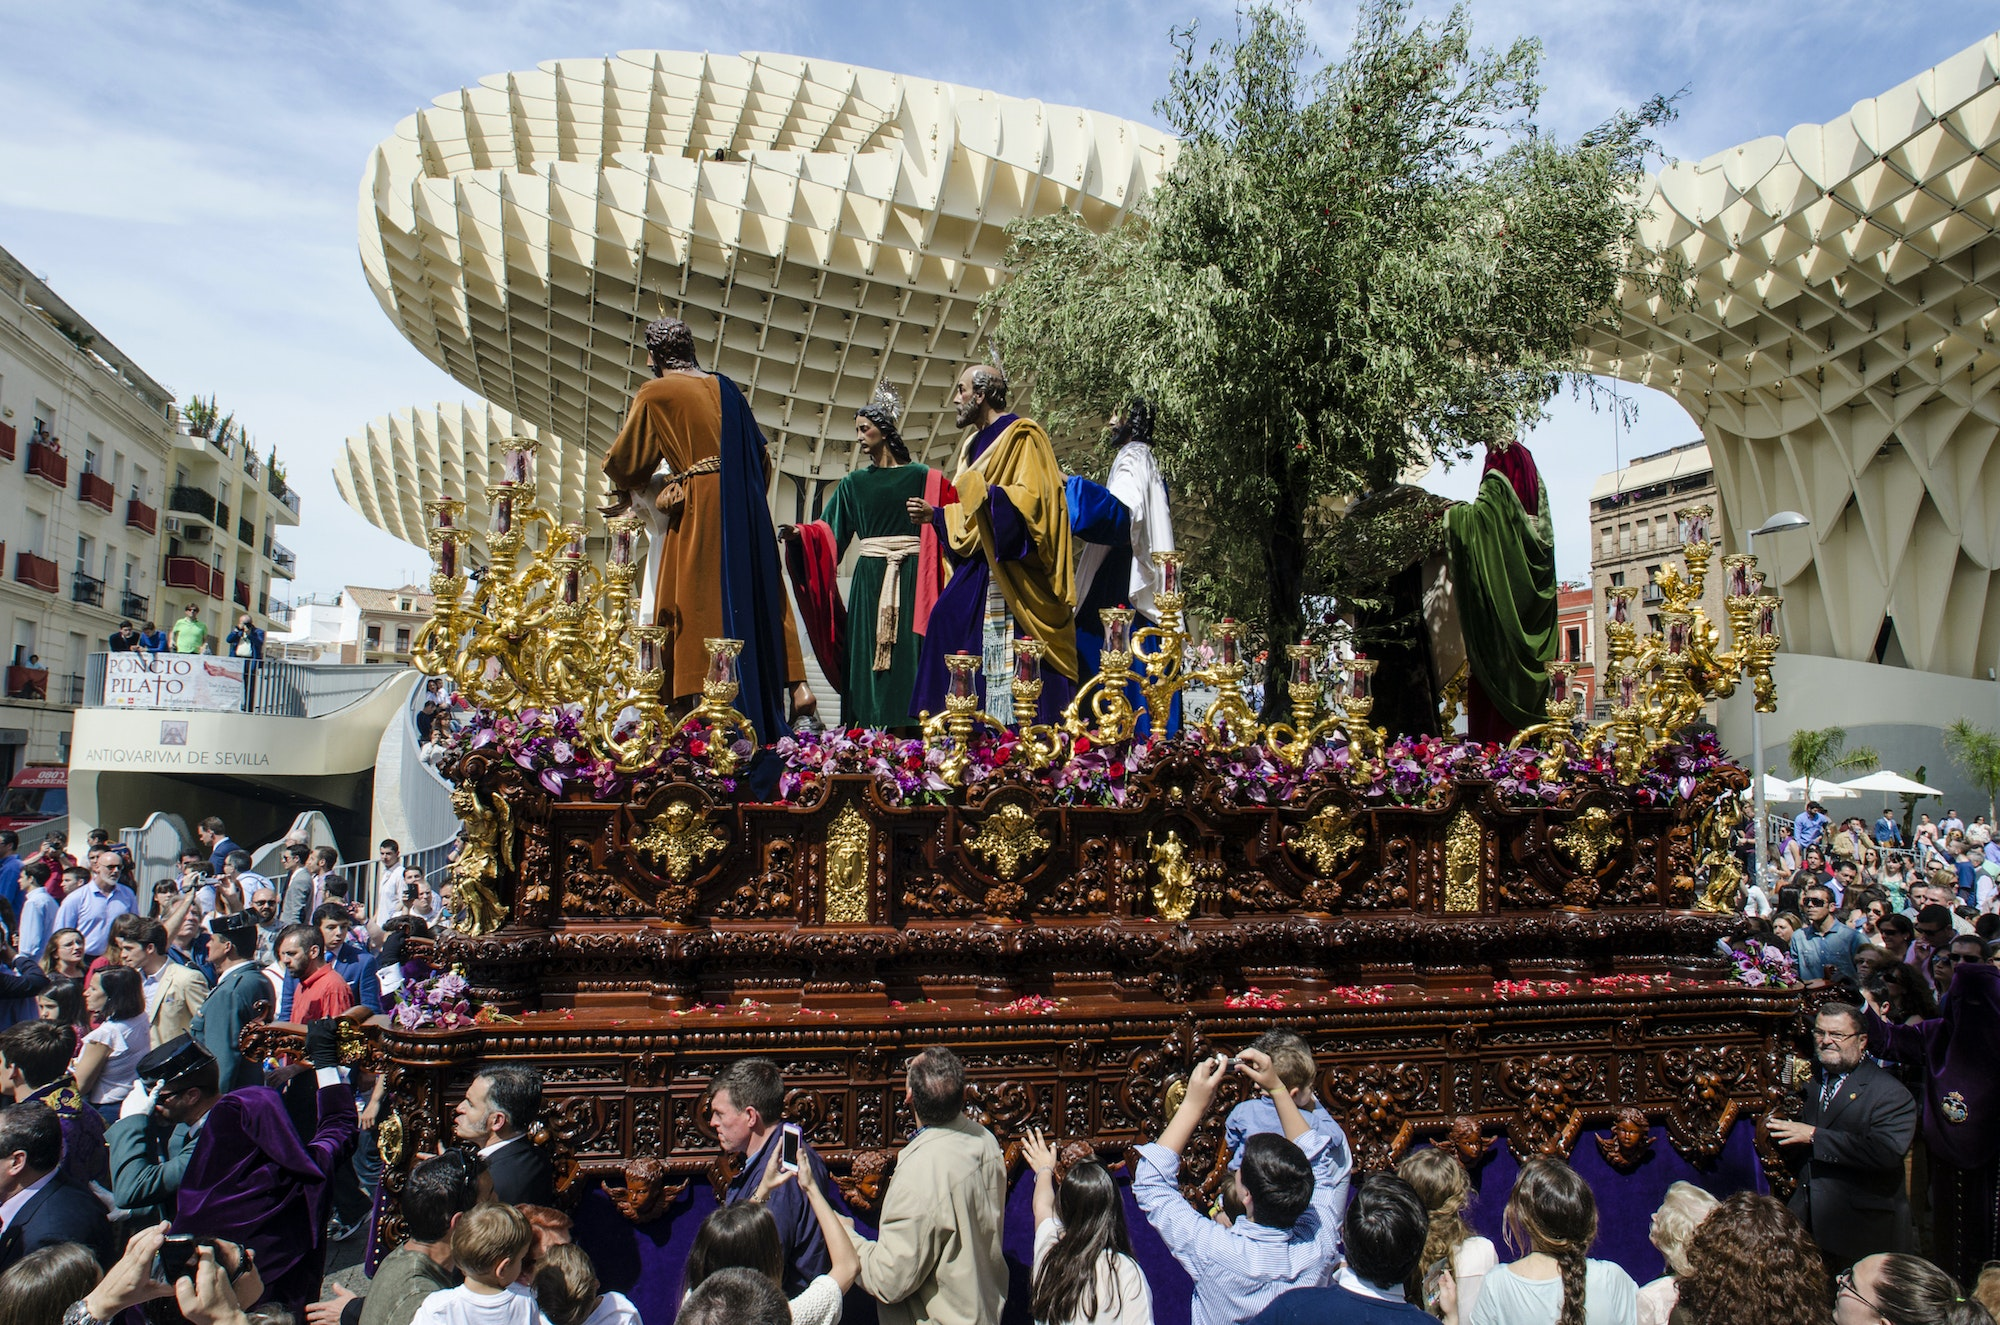 A Holy Week procession in Seville, Spain